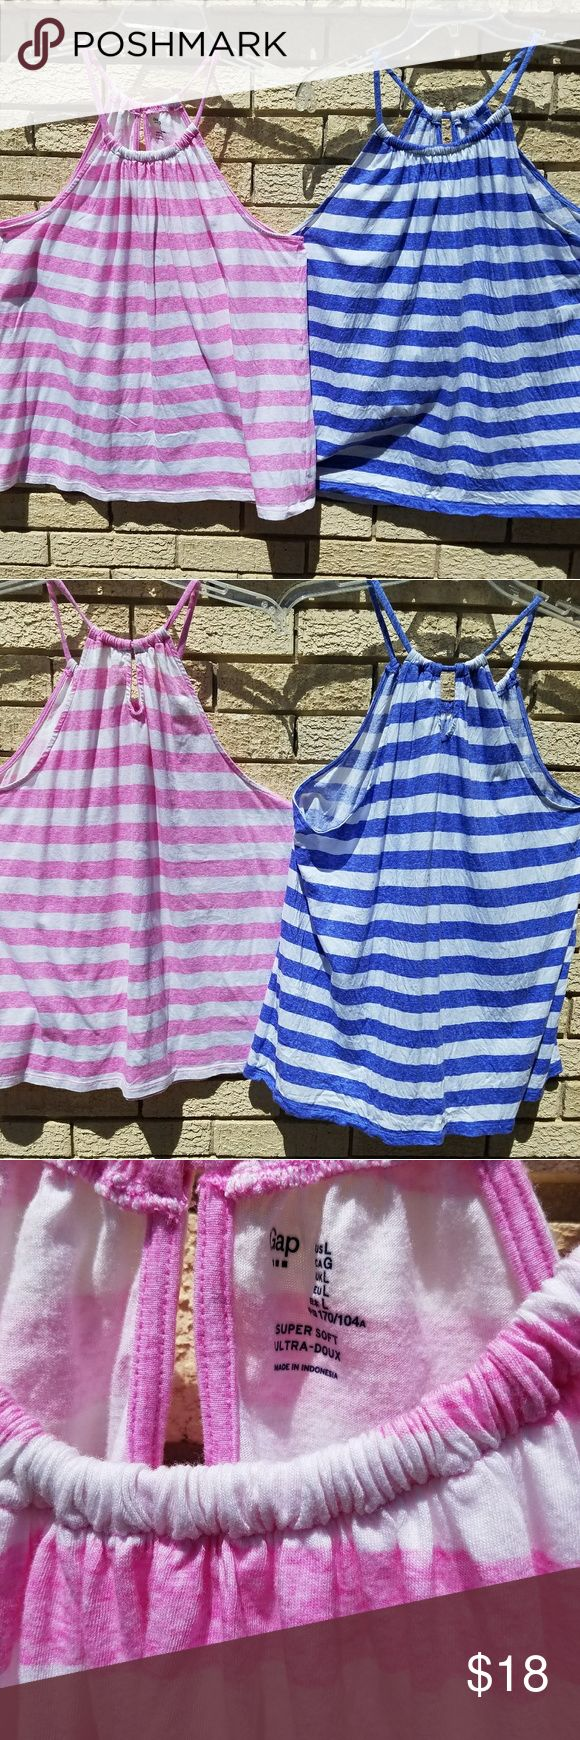 SET of 2 sleeveless Gap Shirts Size Large Tank Ladies Juniors 2 sleeveless Gap Shirts Size Large . Pretty blue and white striped and other is pink and white striped. These are perfect for Spring and summer! GAP Tops Tank Tops